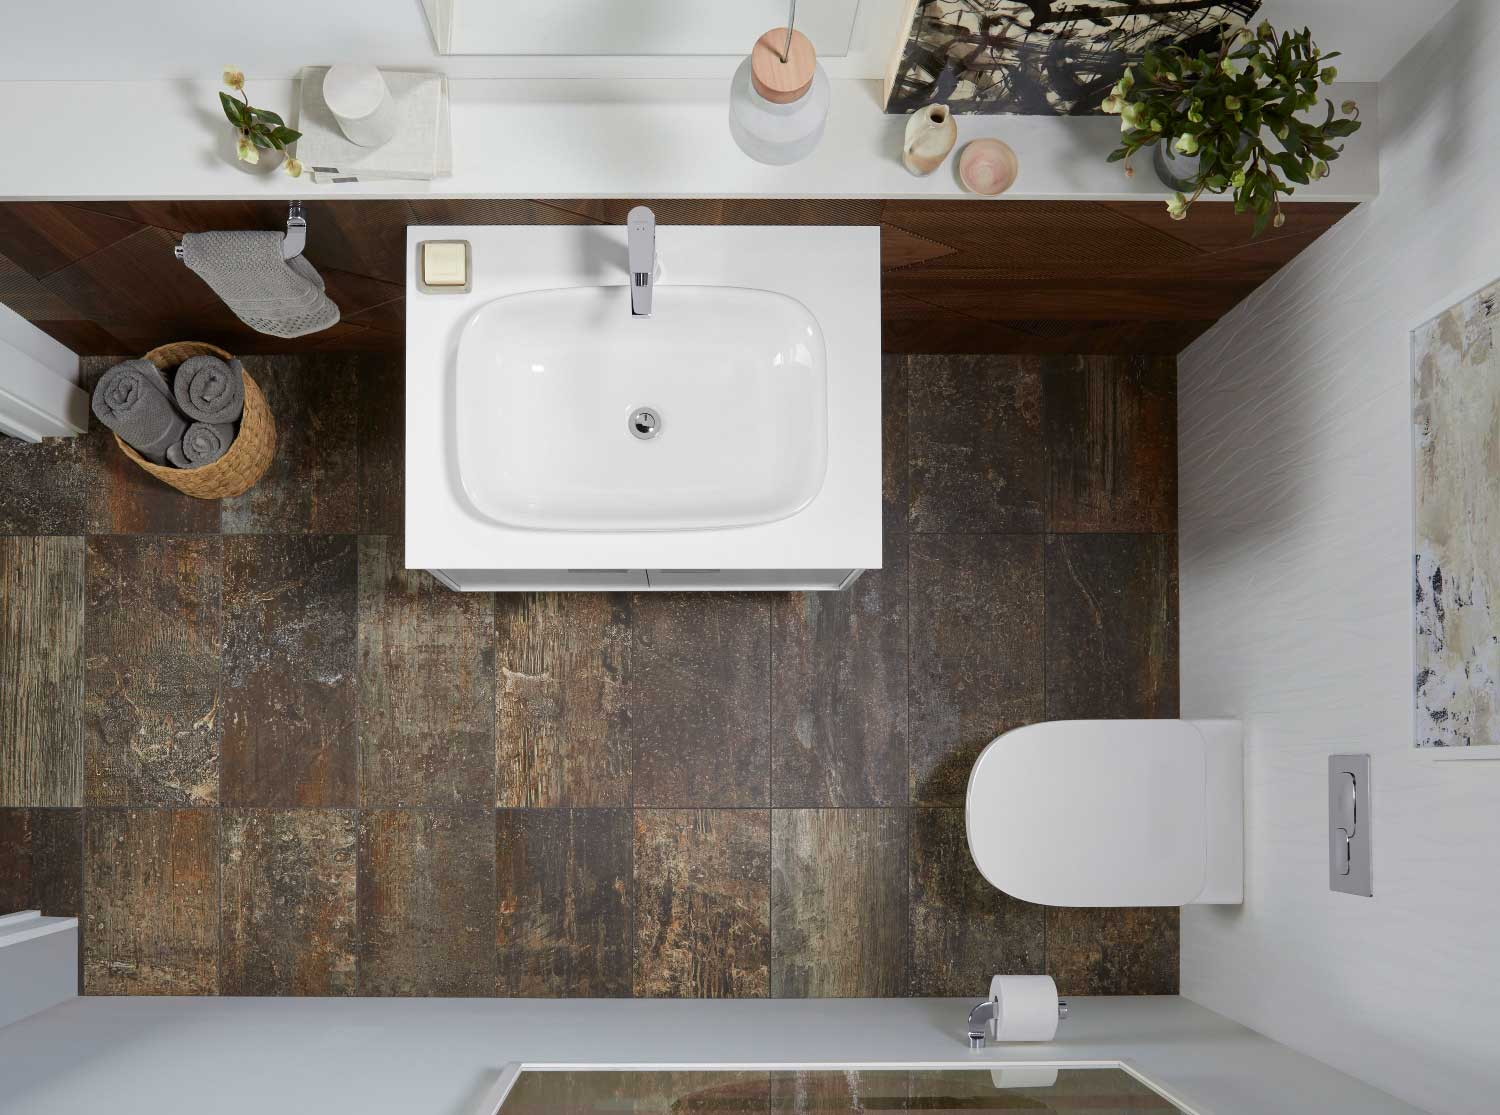 ModernLife™ Collection bathroom range by KOHLER